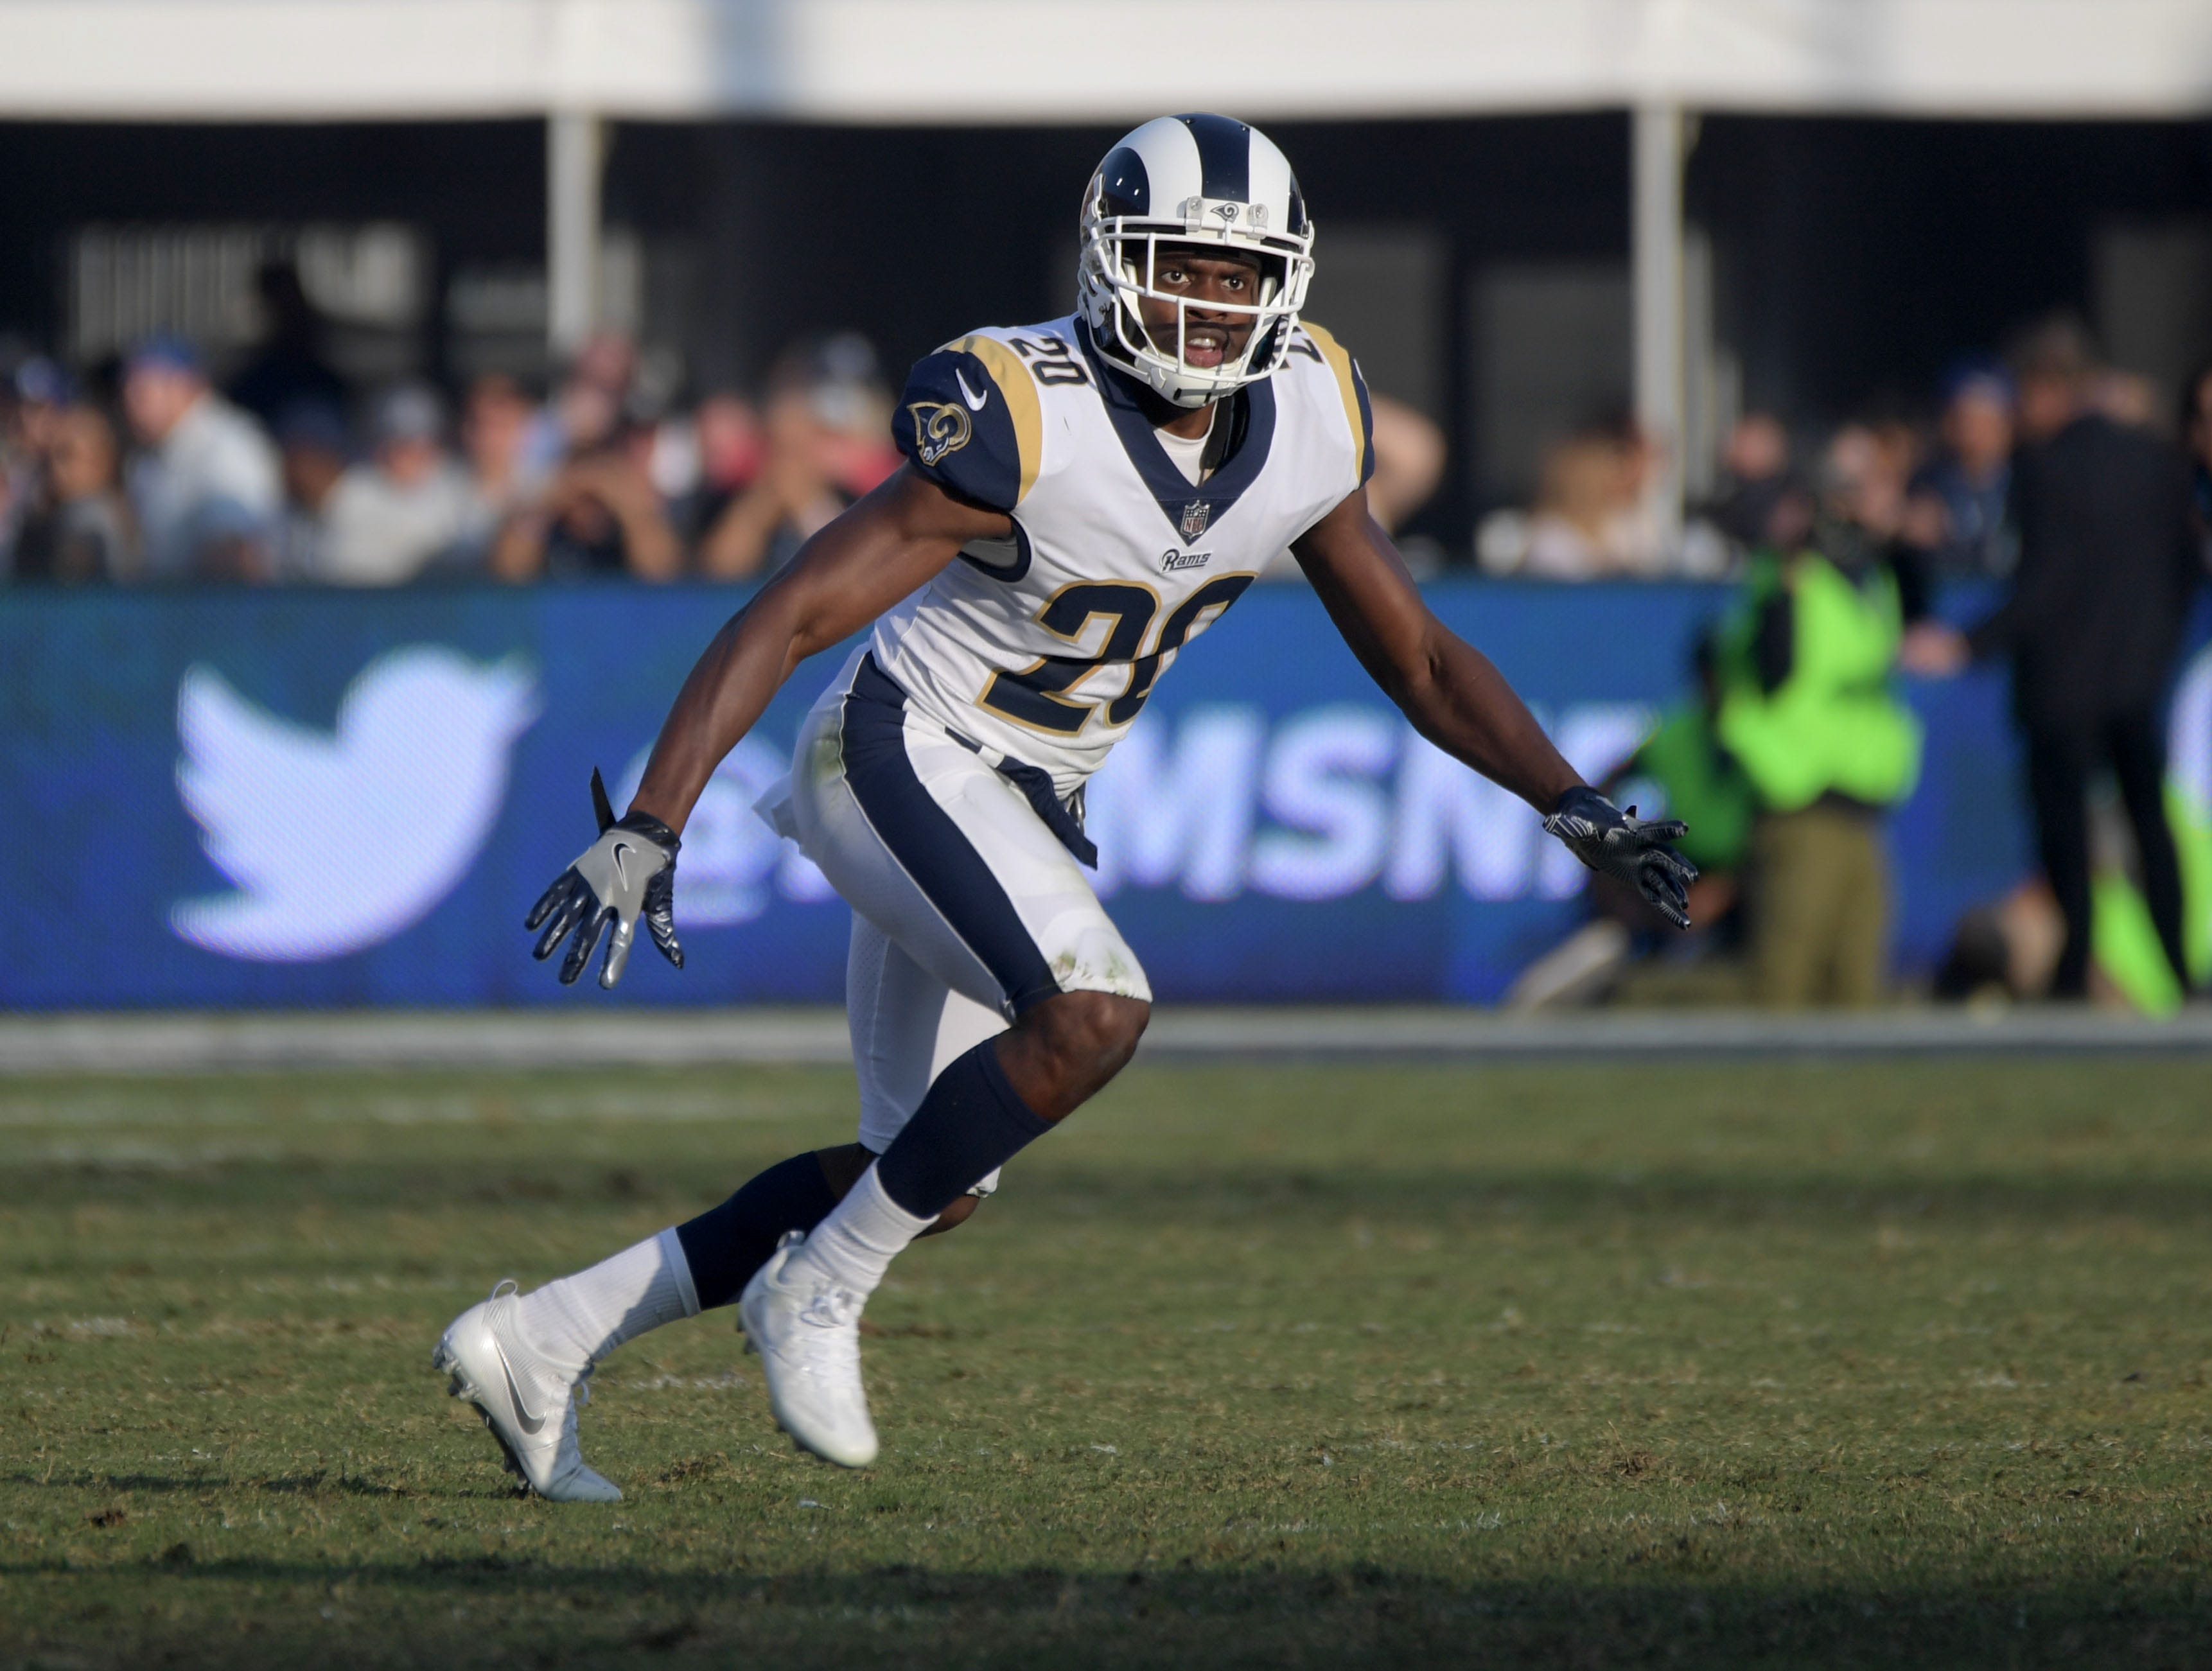 Nov 26, 2017; Los Angeles, CA, USA; Los Angeles Rams free safety Lamarcus Joyner (20) during an NFL football game against the New Orleans Saints at Los Angeles Memorial Coliseum. The Rams defeated the Saints 26-20. Mandatory Credit: Kirby Lee-USA TODAY Sports